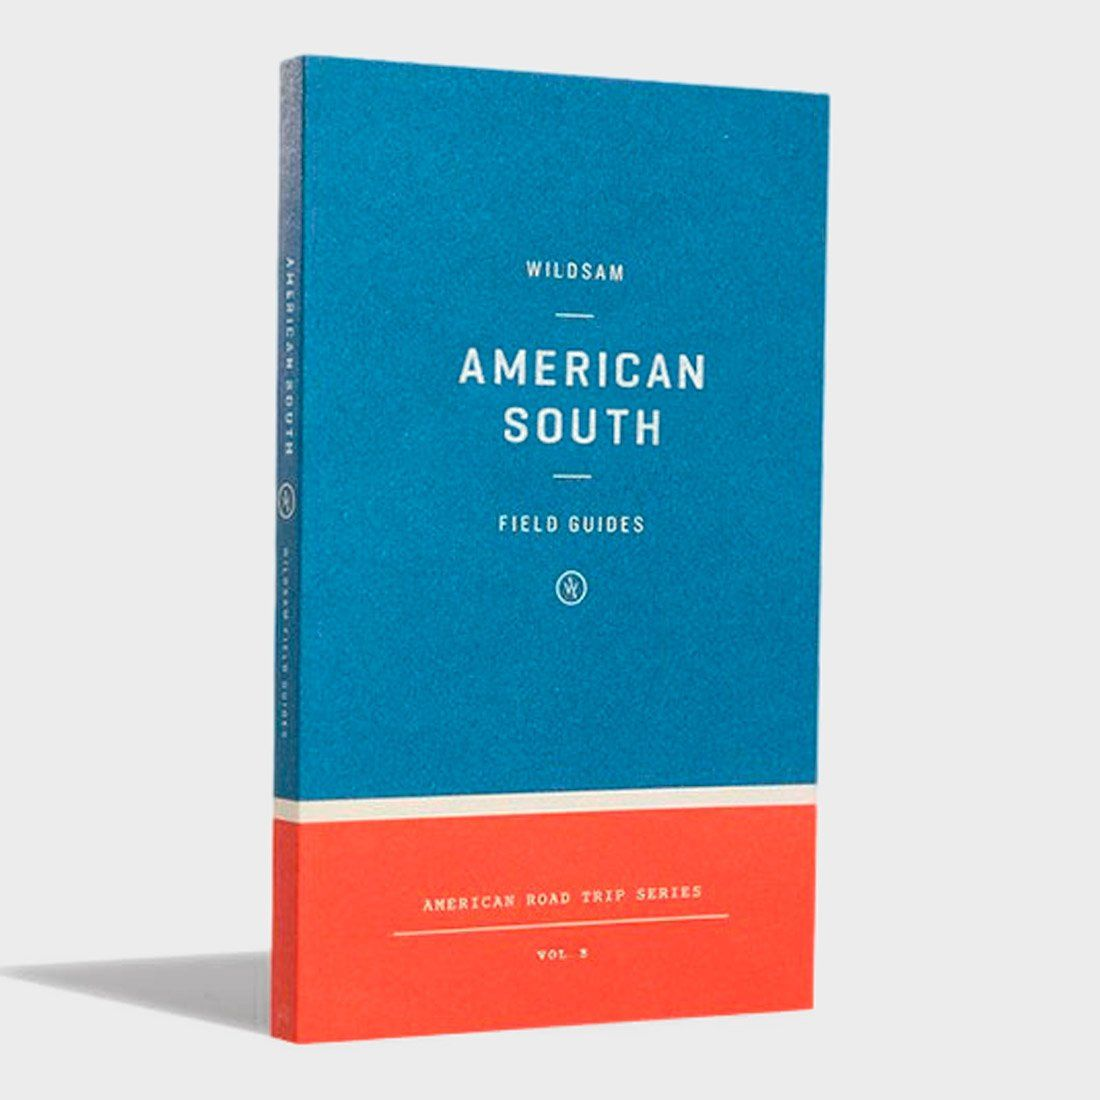 Wildsam American South Road Trip Book